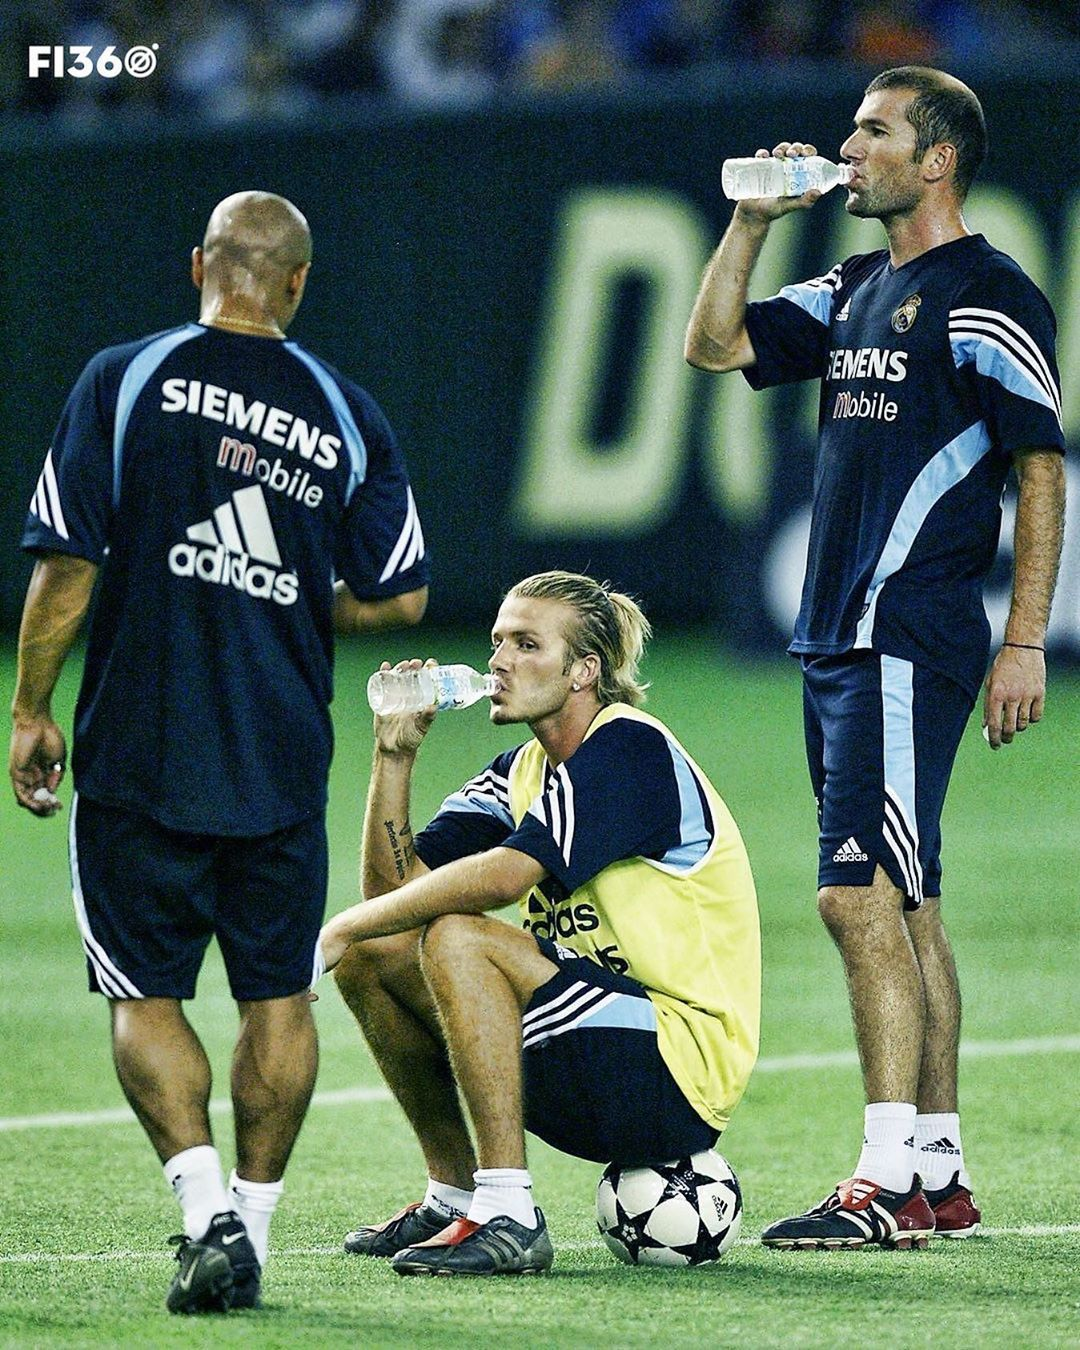 Football Icons 360 On Instagram Remember To Stay Hydrated In